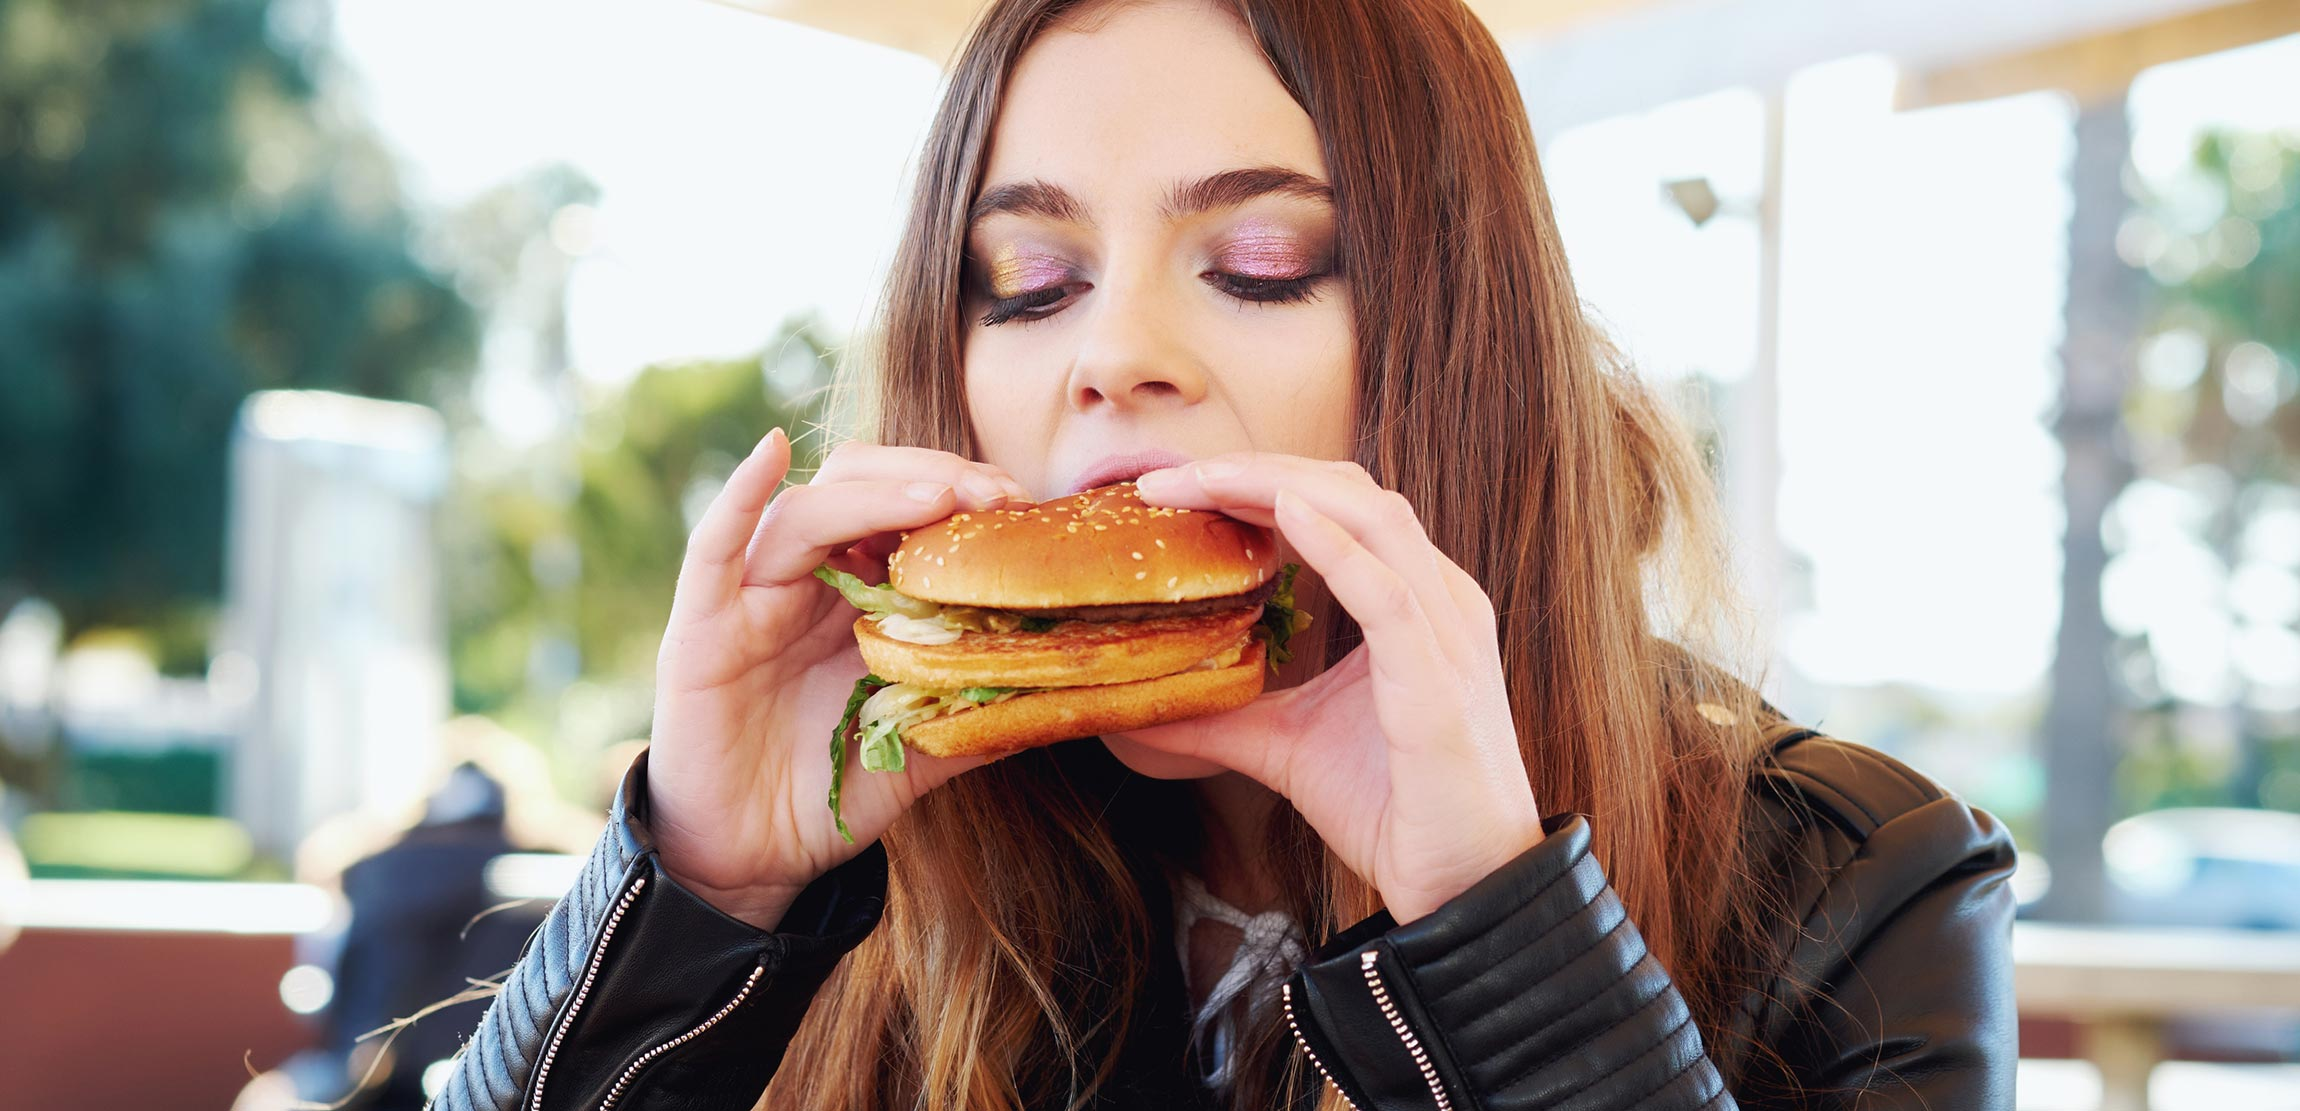 Image result for oily food cause acne